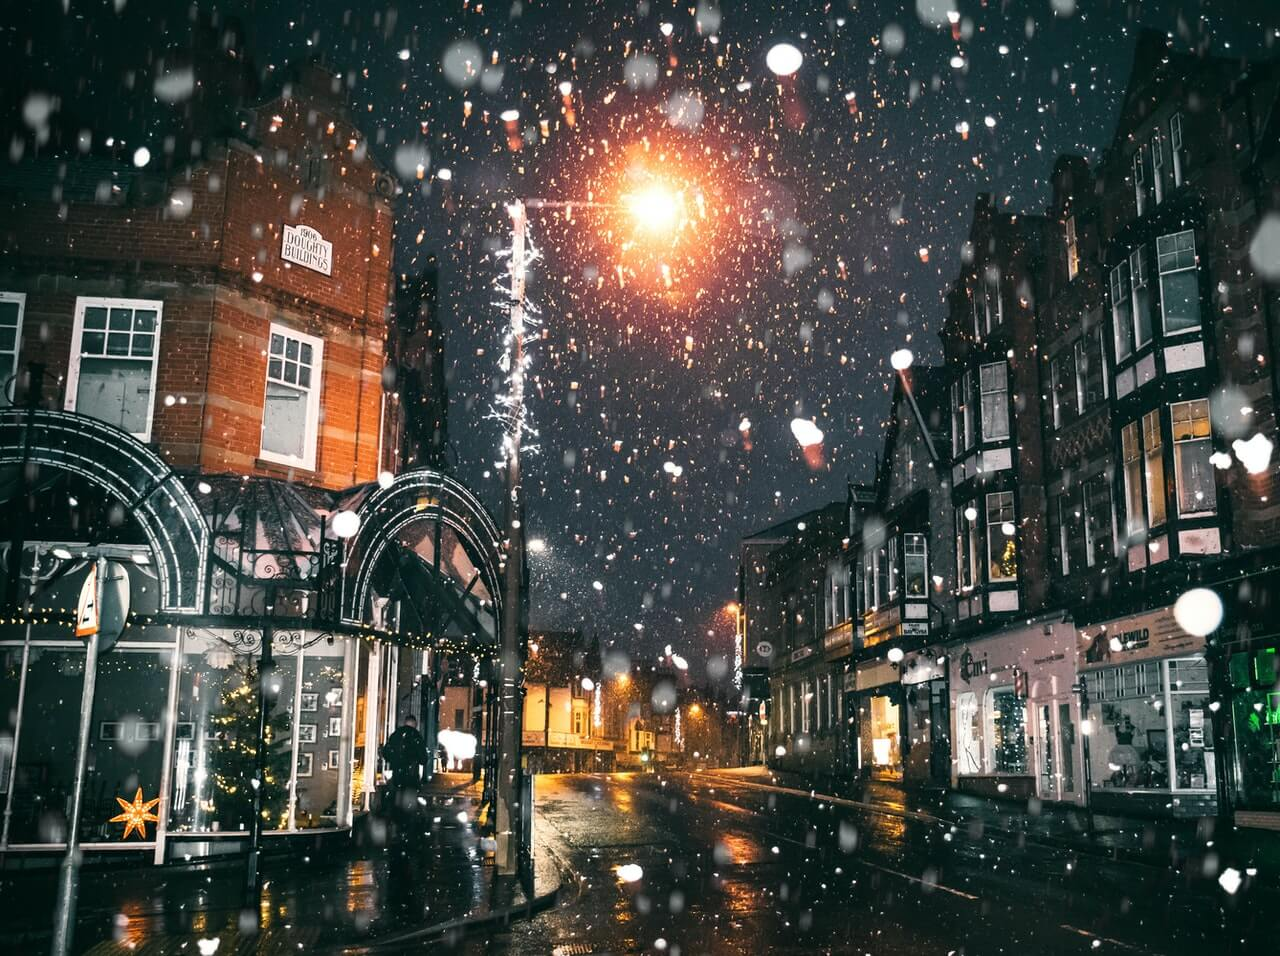 Night time in a town street at Christmas